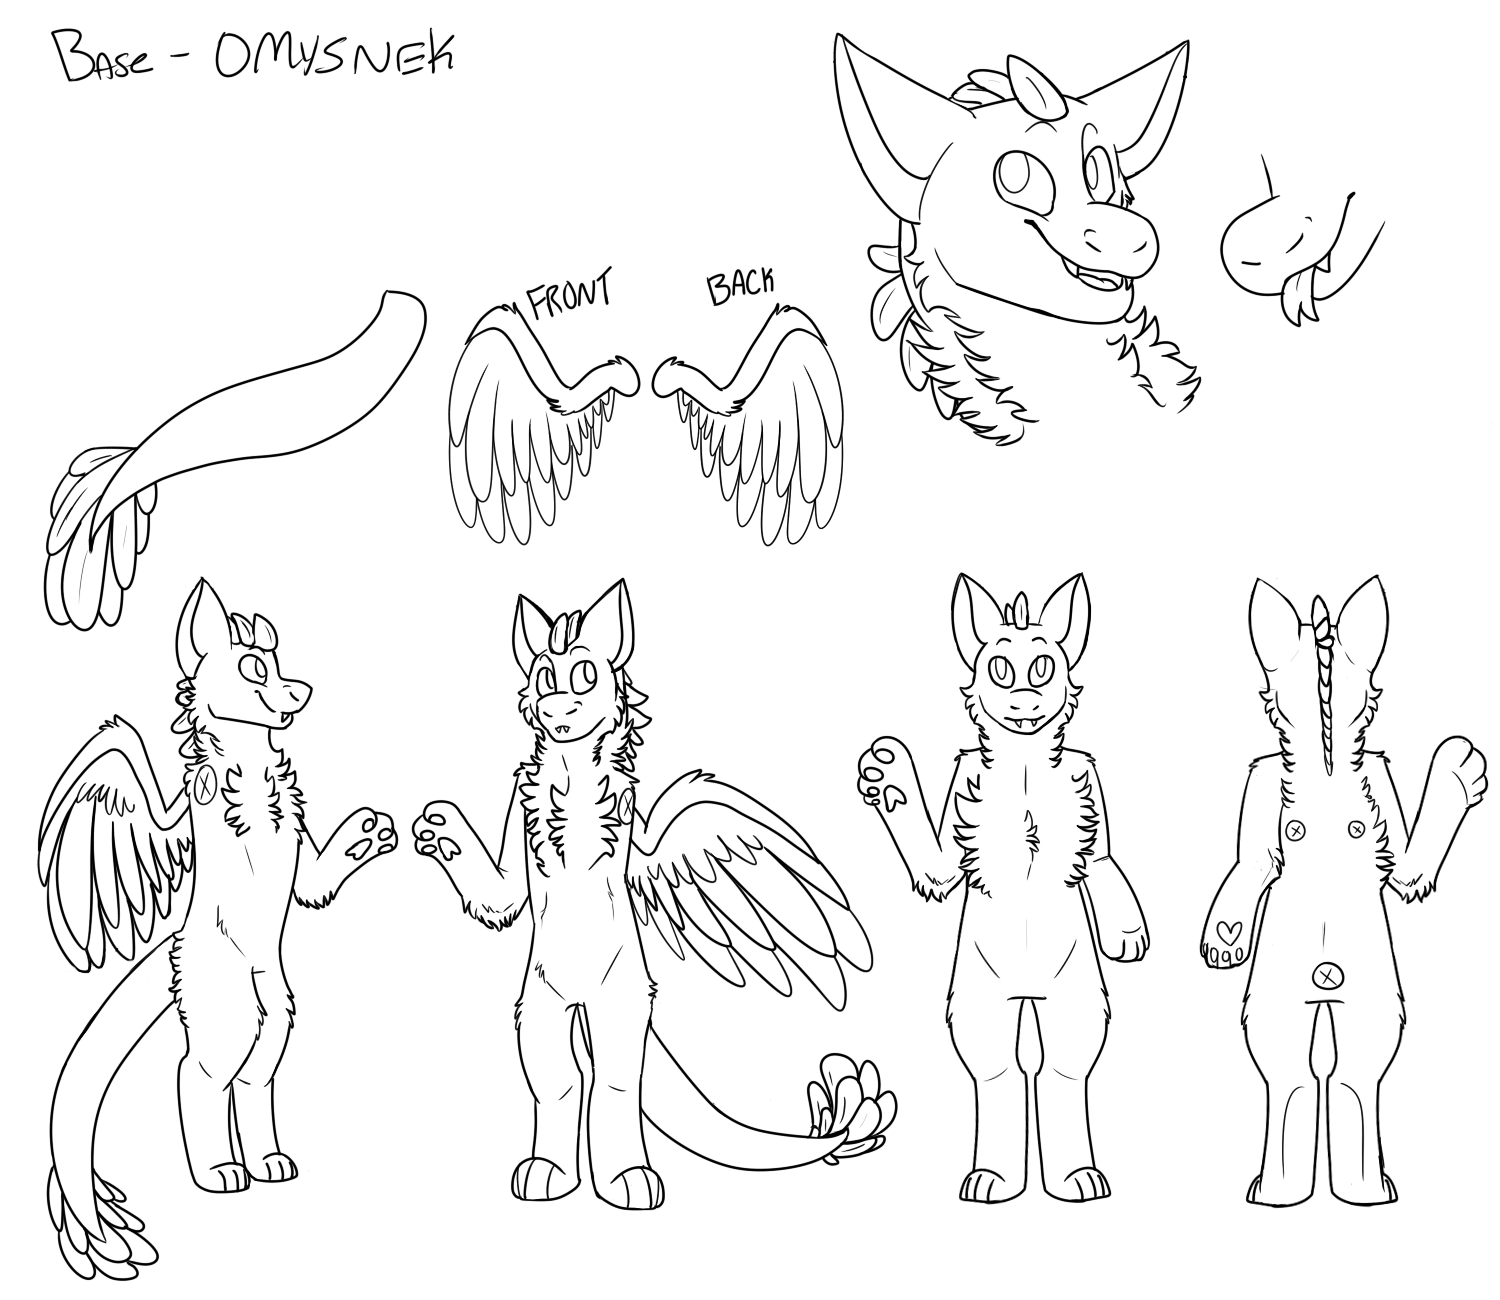 Dutch Angel Dragon (FREE BASE) — Weasyl